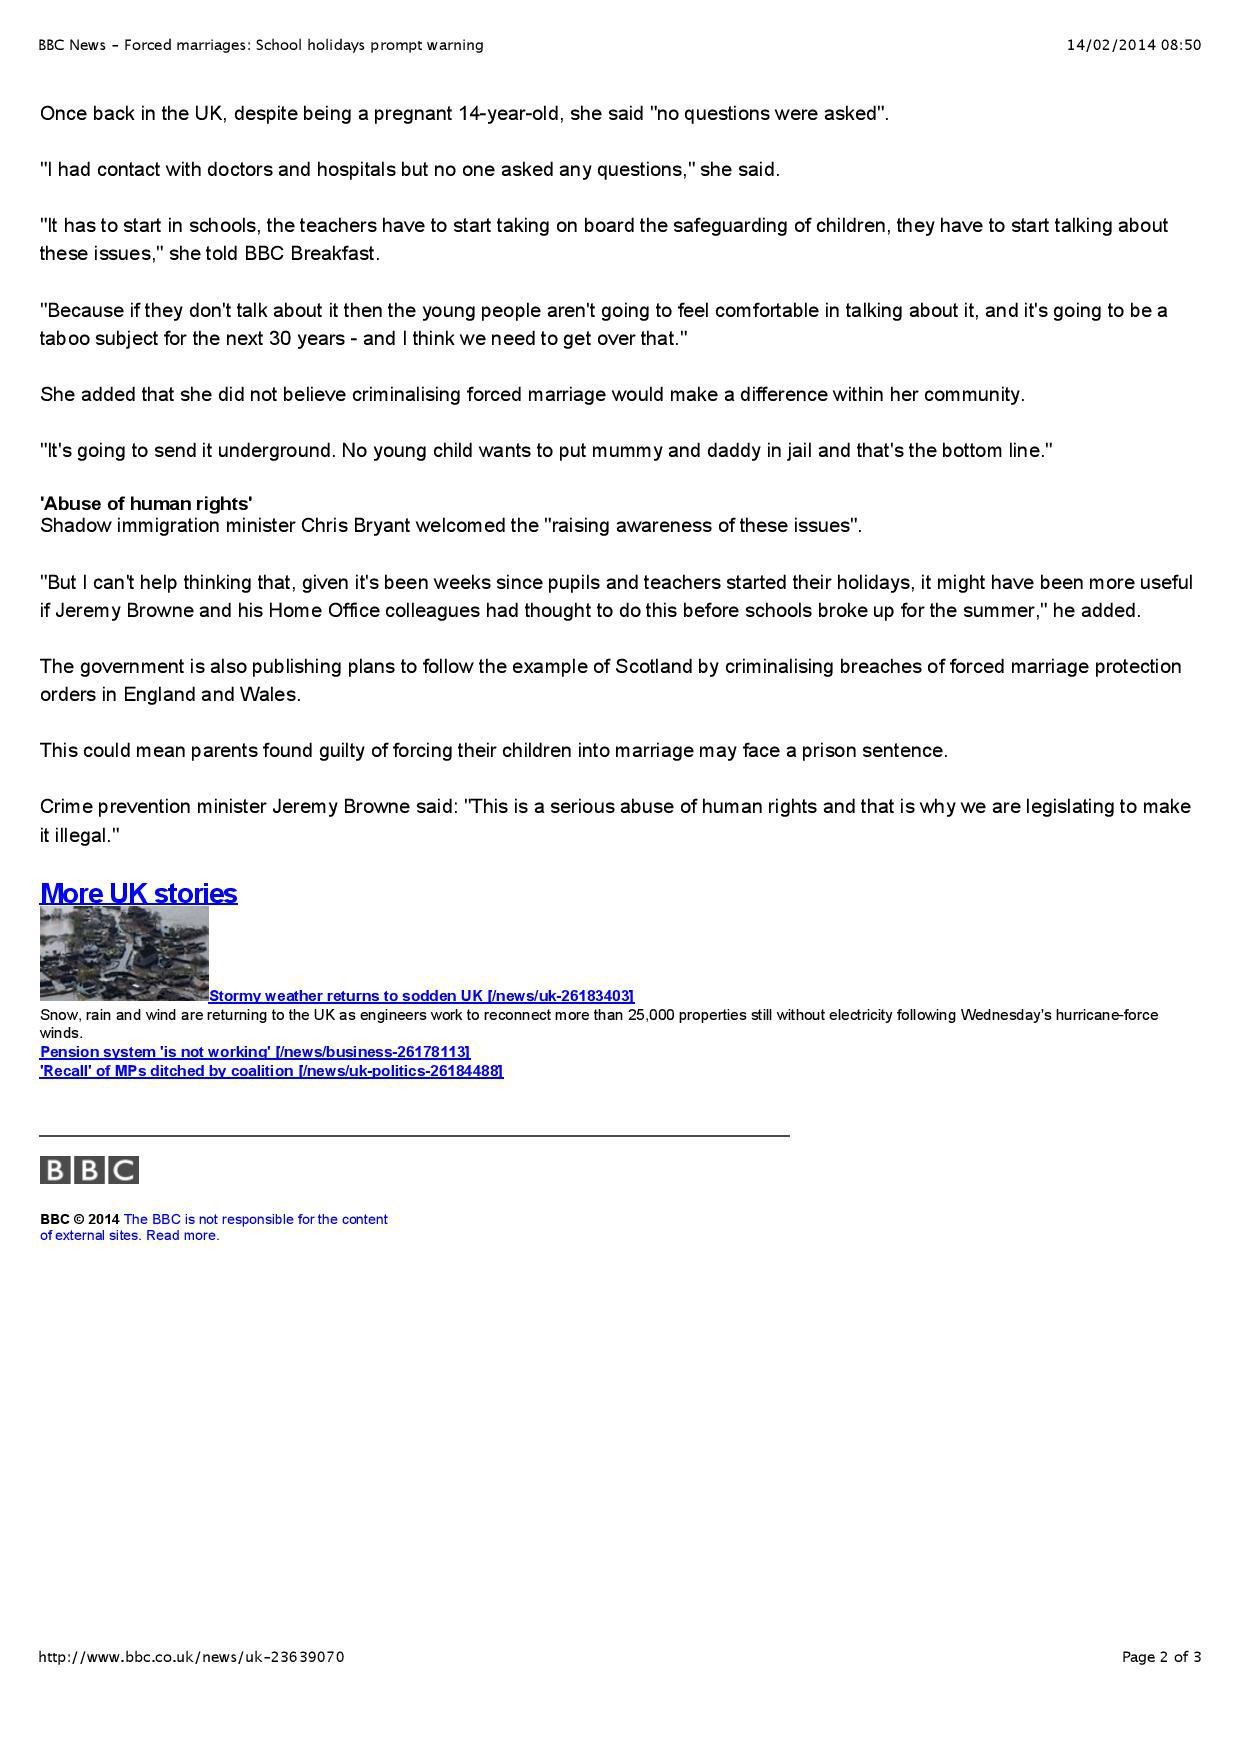 done-bbc-news-forced-marriages-school-holidays-prompt-warning-page-002